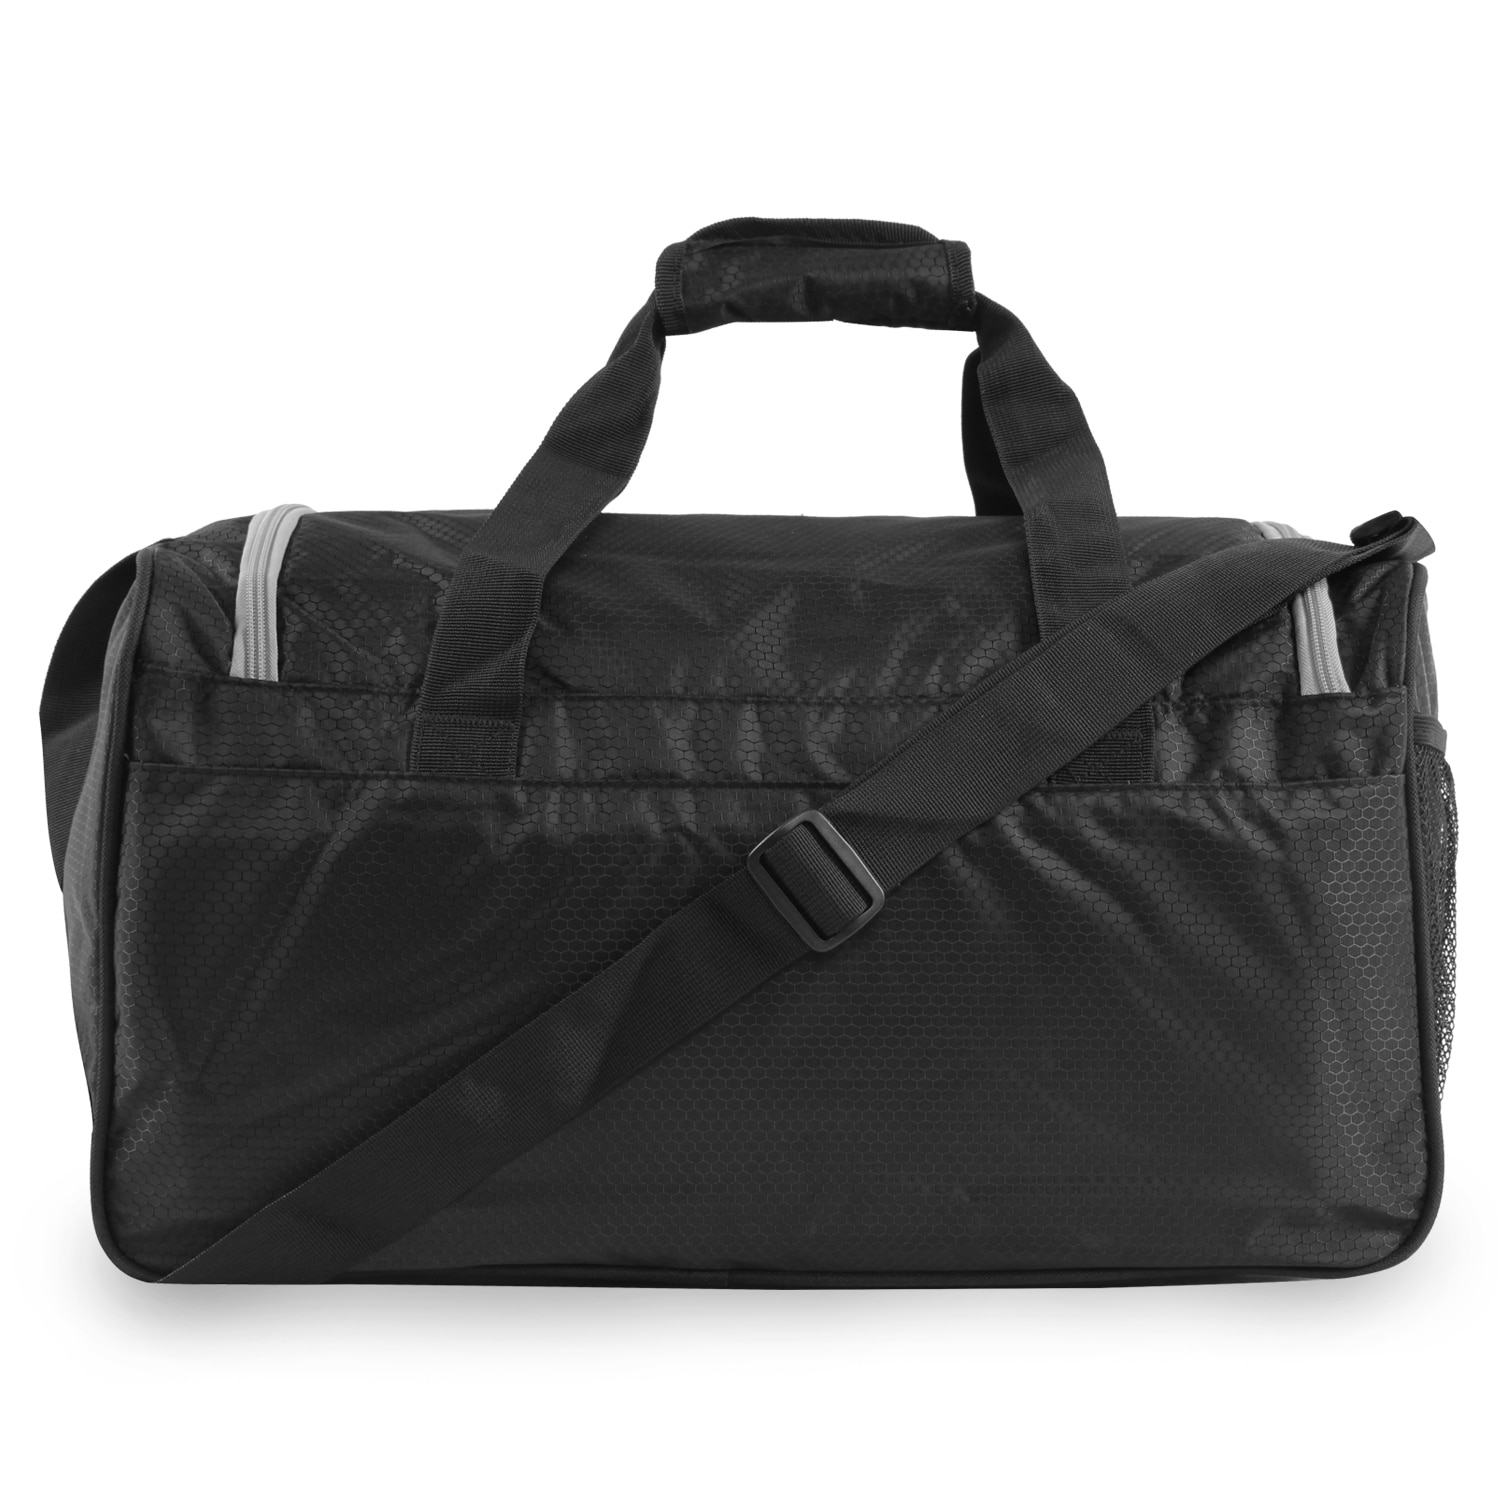 Buy FILA Ace 2 Small Duffel Gym Sports Bag Black grey One Size ... 30a748303d1a5